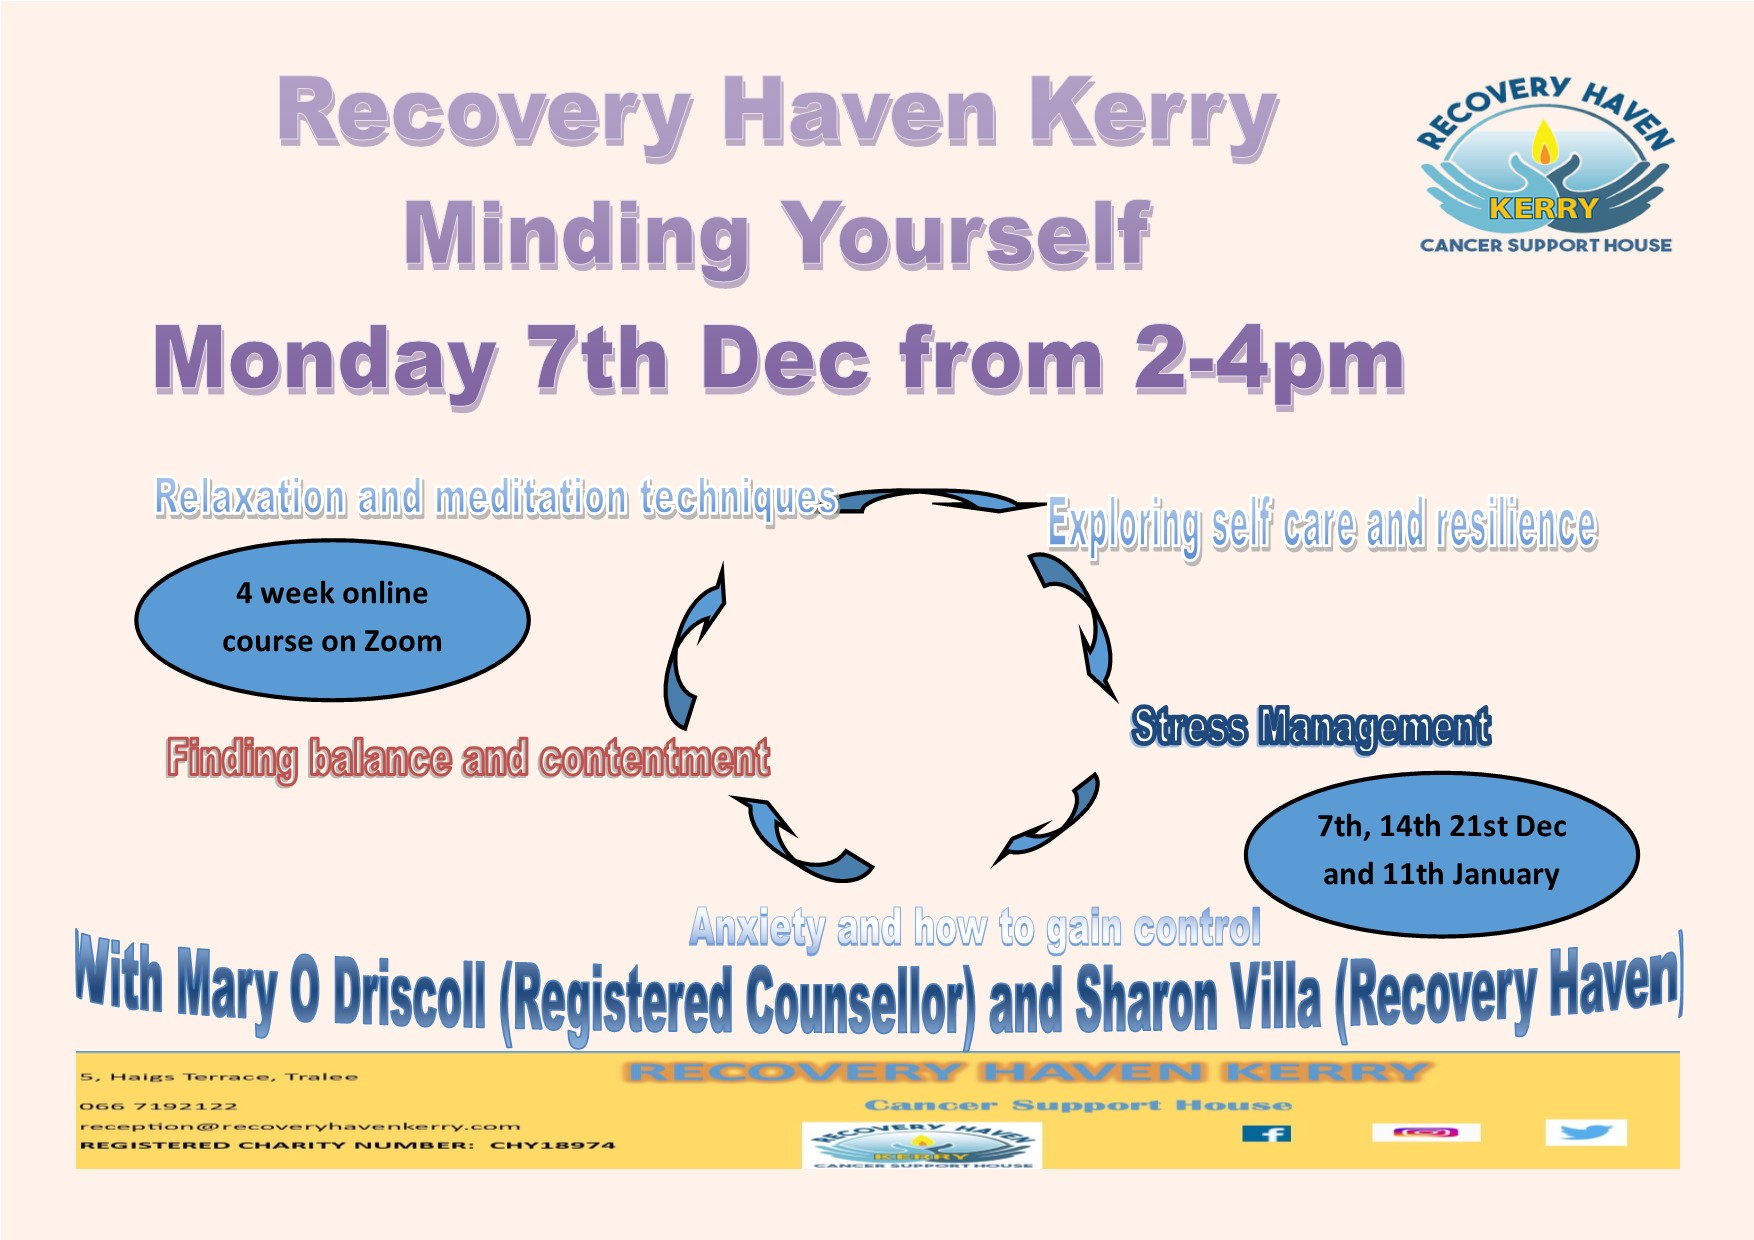 Minding Yourself course